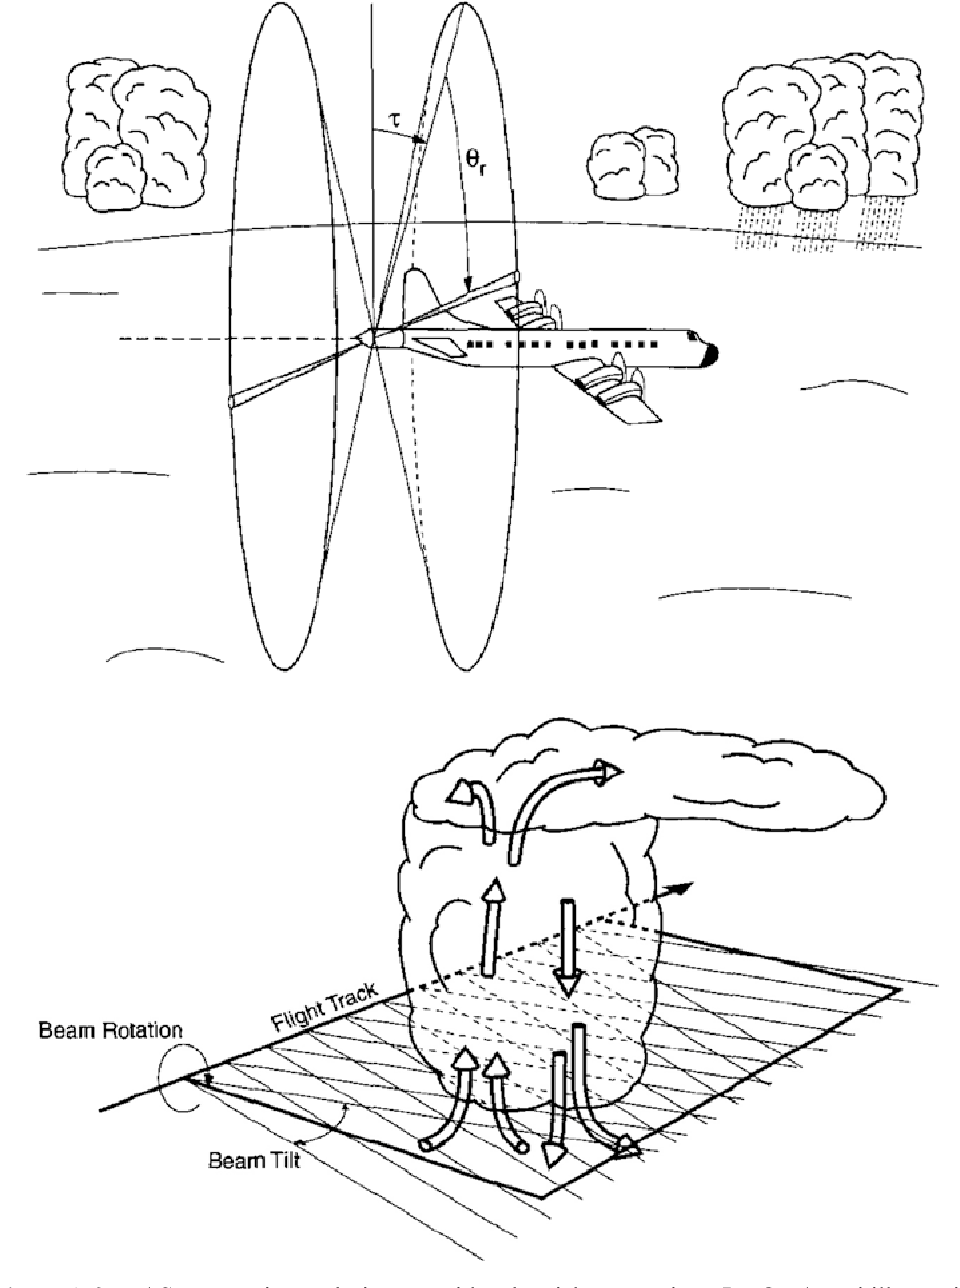 Figure A.3. FAST: scanning technique used by the airborne radar ELDORA and illustration of the pseudo dual-Doppler synthesis of the wind field for beams that trace out cones alternately in the fore and aft directions. (Top) Scanning illustrated at a fixed time; the antennas and radome rotate as a unit about an axis parallel to the longitudinal axis of the aircraft. The fore and aft angles are and the angle measured in the clockwise direction about the longitudinal axis of the aircraft is r. (Bottom) Idealized example of beam intersections in a flight by the convective storm (from Hildebrand et al., 1996).